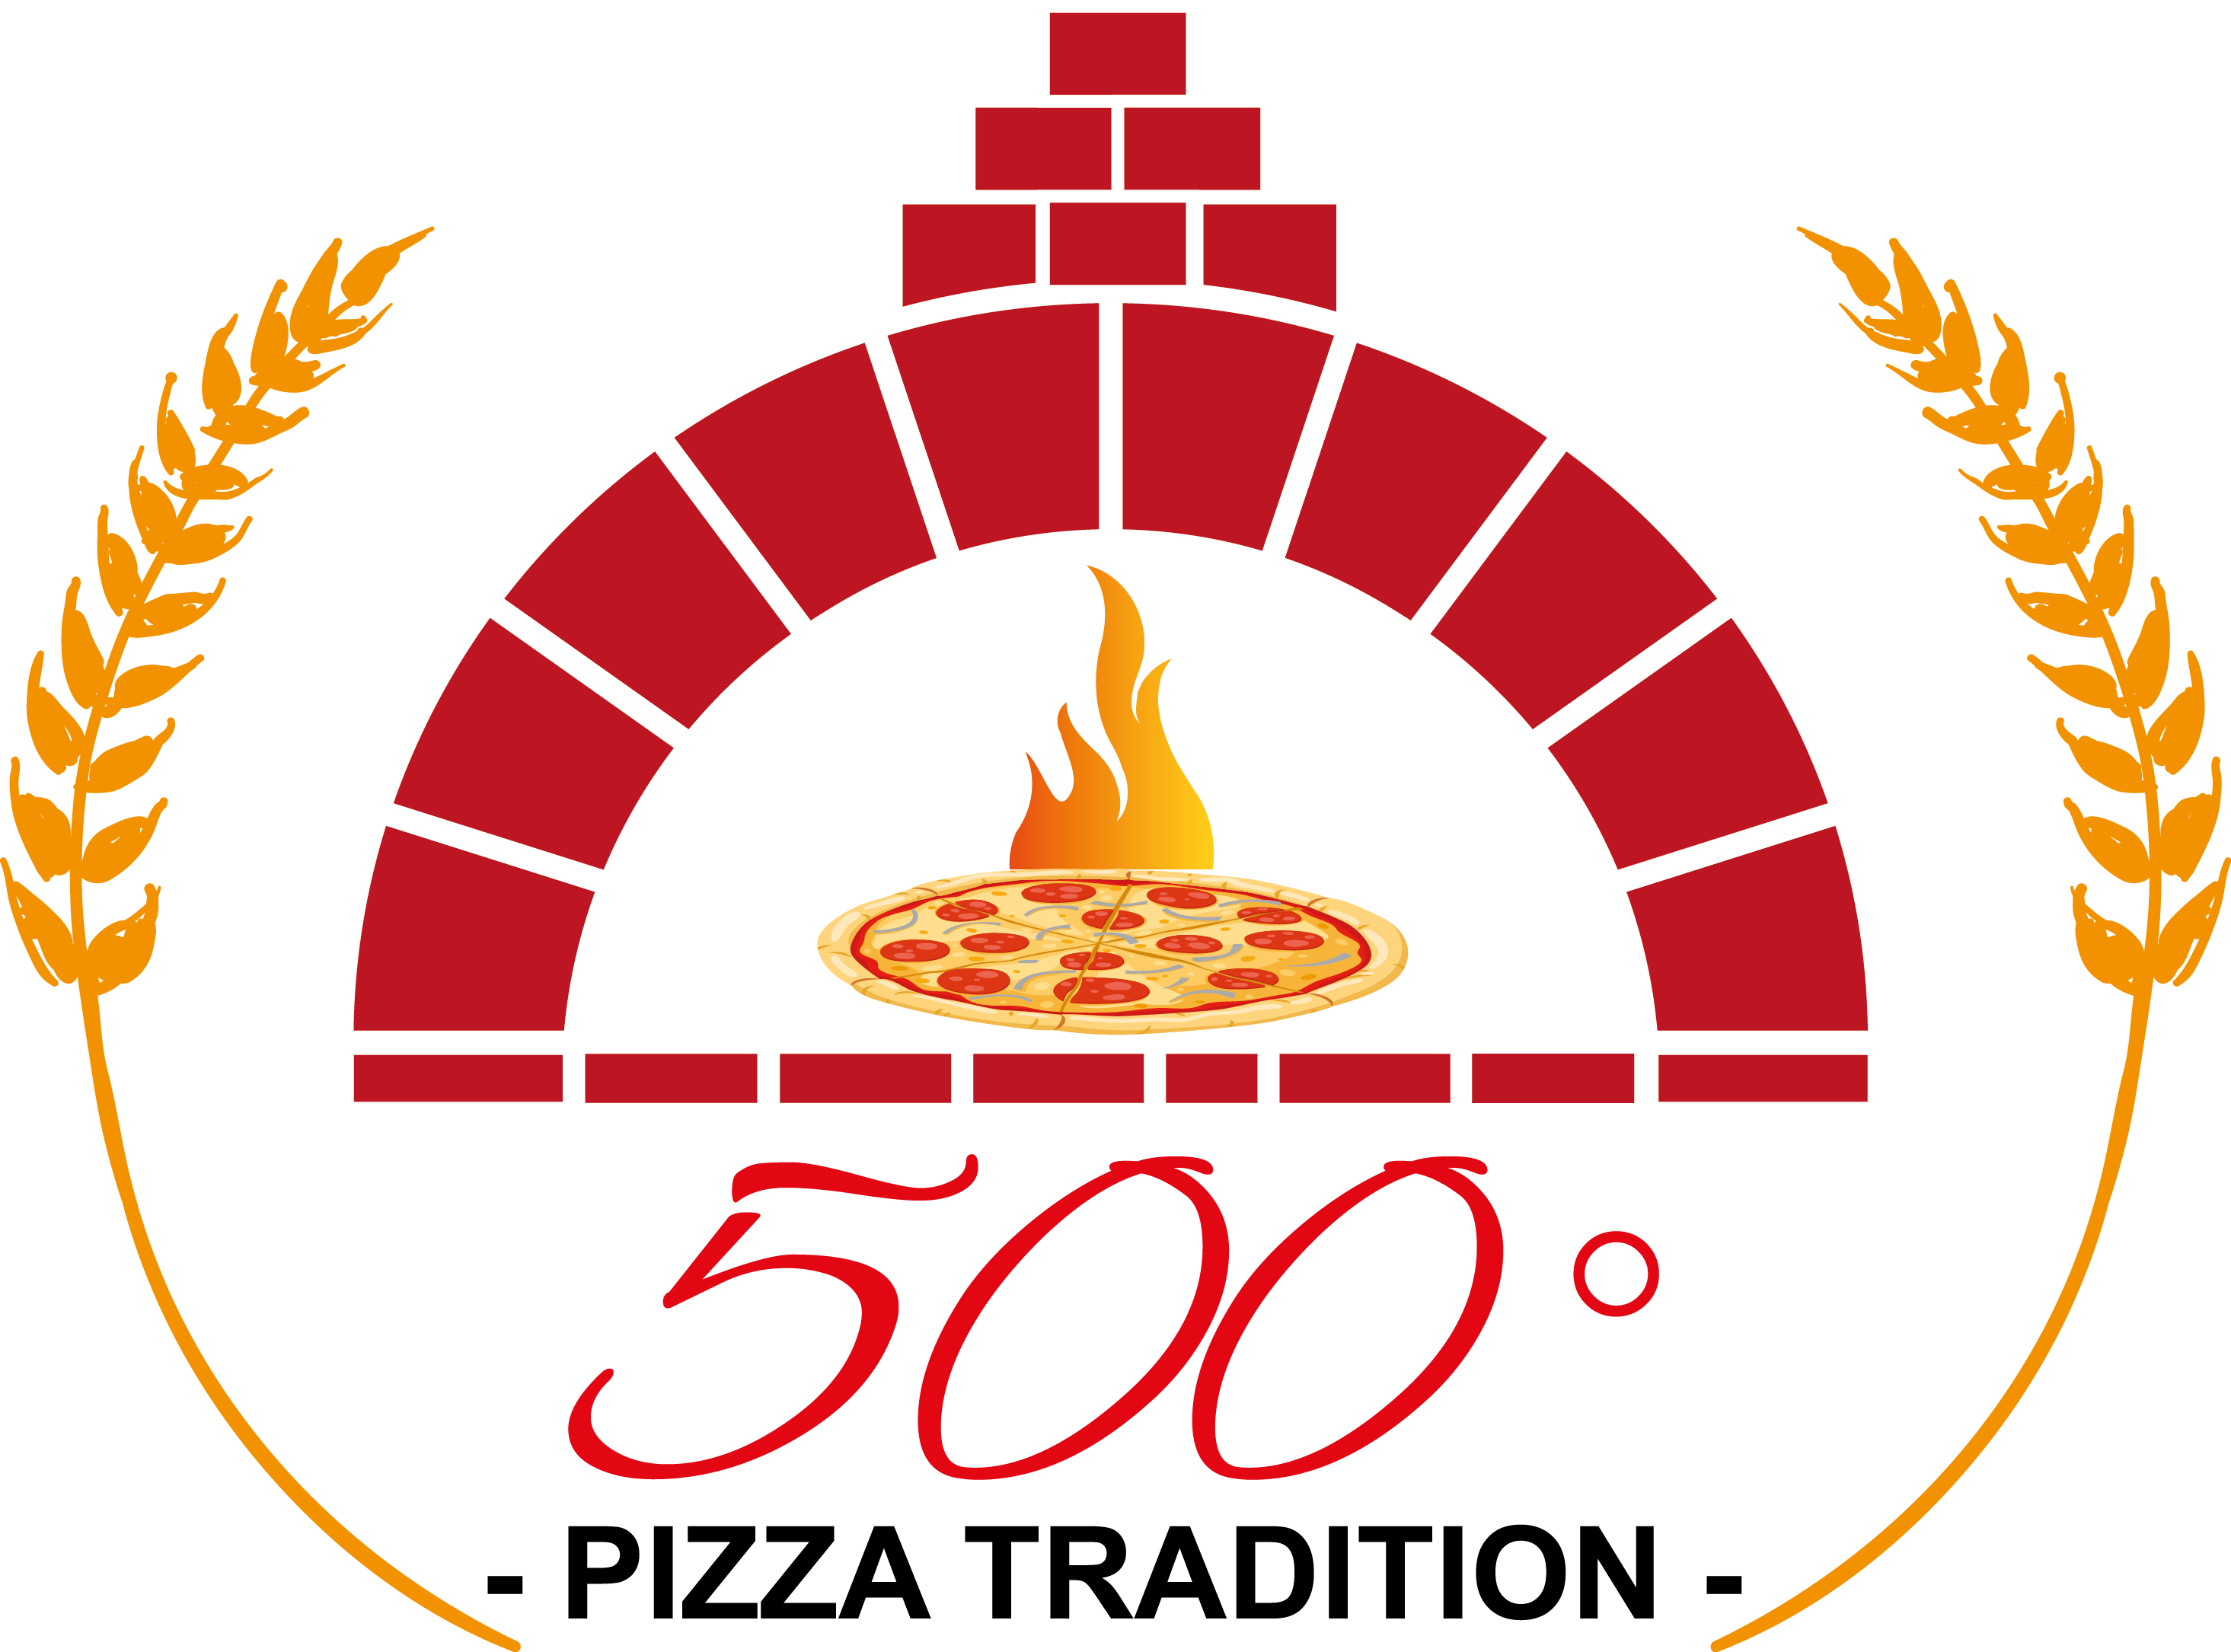 logo 500° Pizza Tradition